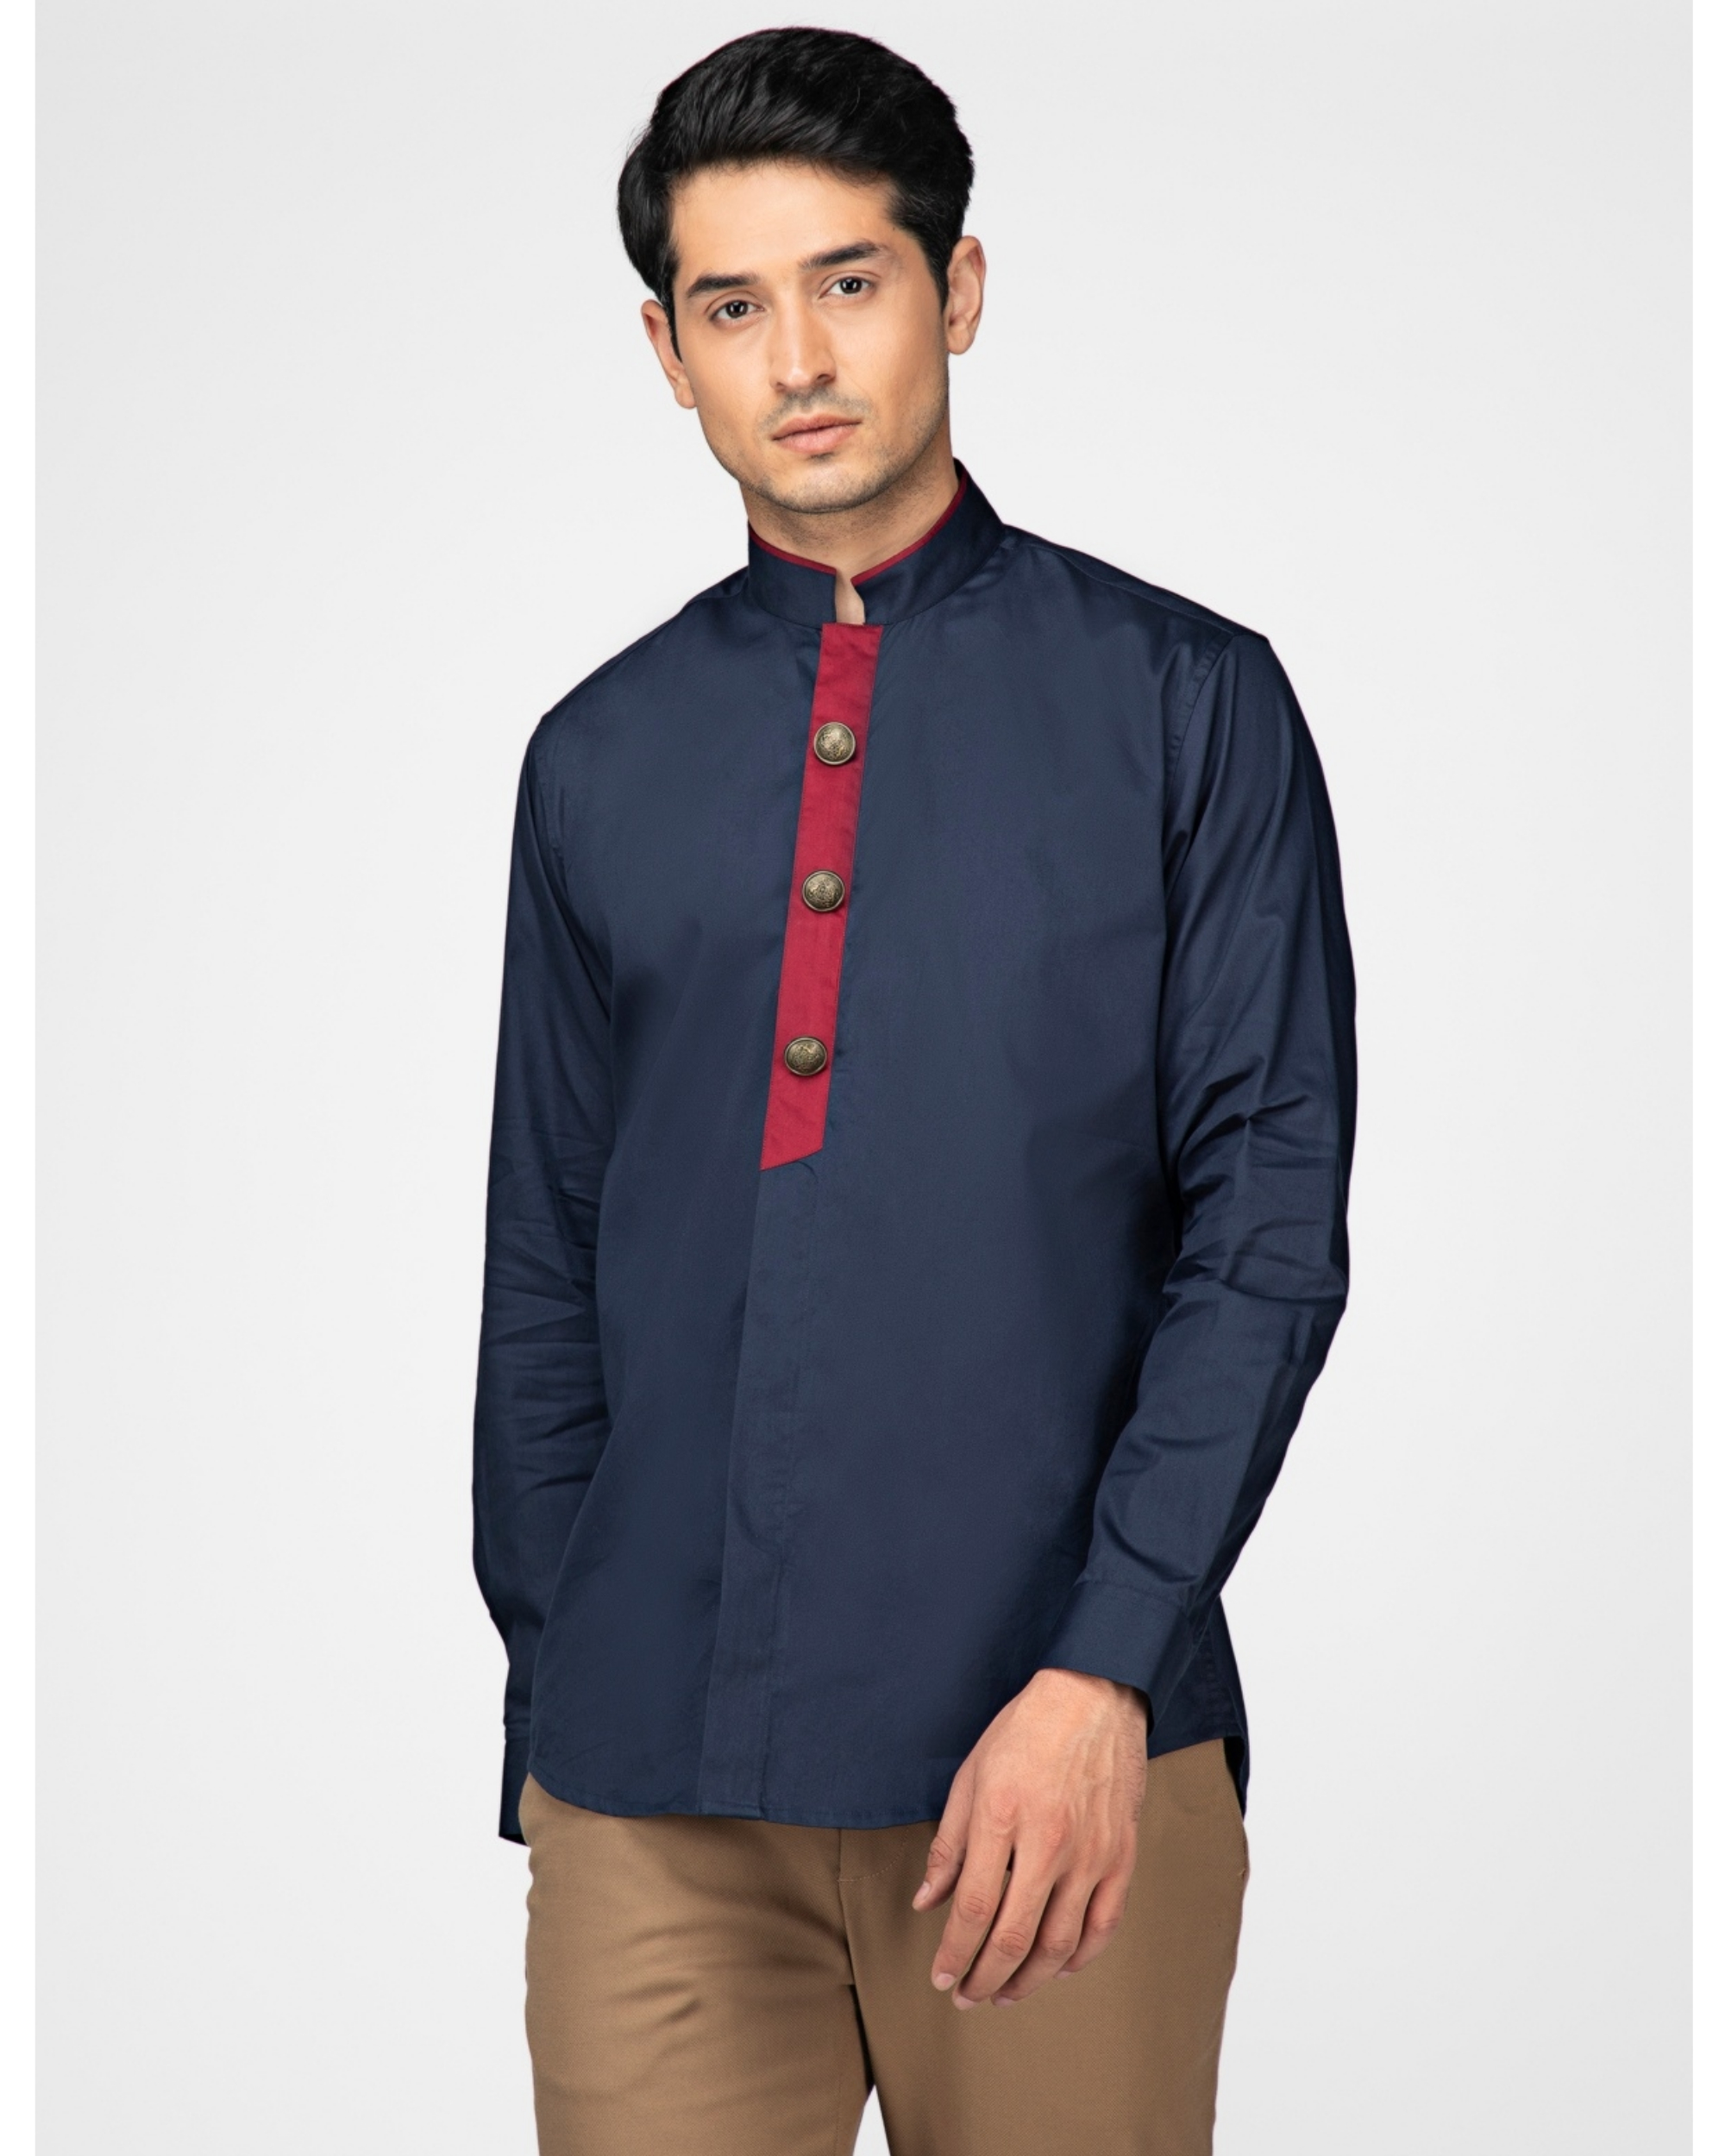 Navy blue ethnic shirt with contrast panel detailing